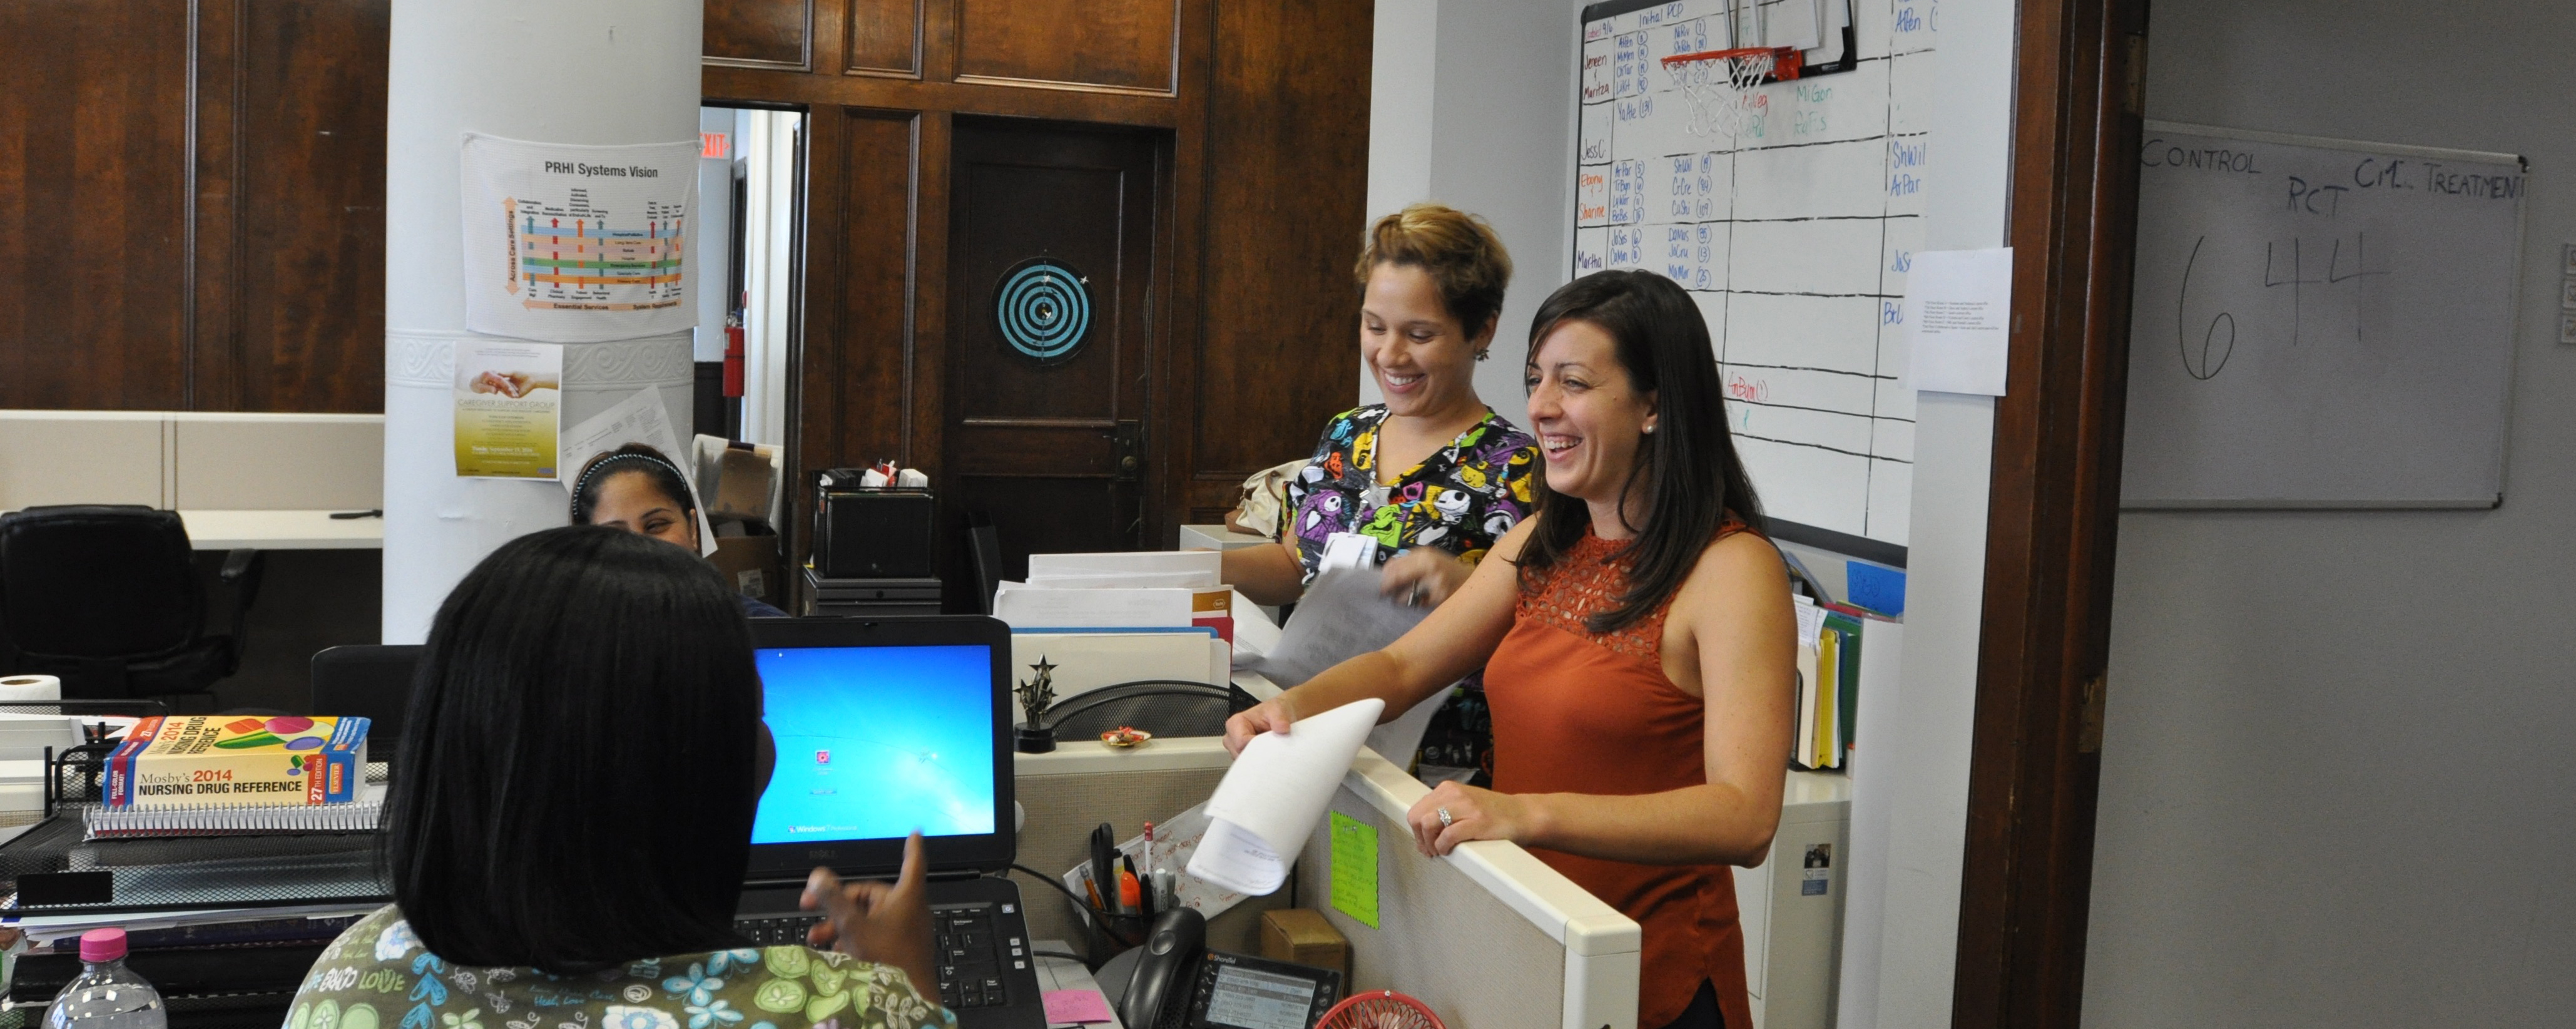 Kim McGuinness laughing with care team members in the Camden Coalition offices